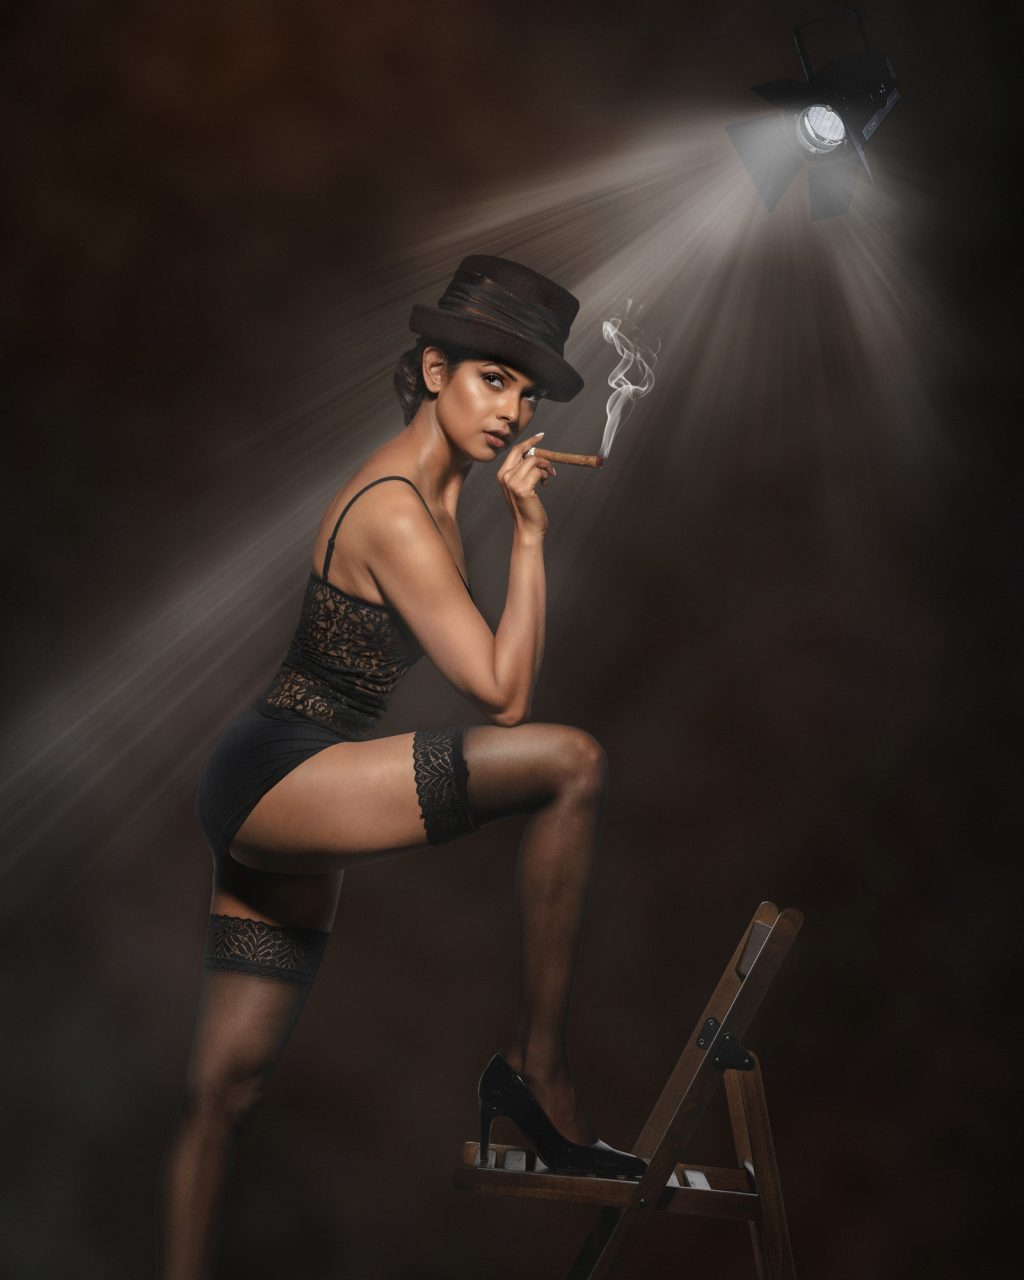 Portrait of a model smoking cigar - Silver Award in Commercial Photography by Michael Hayes